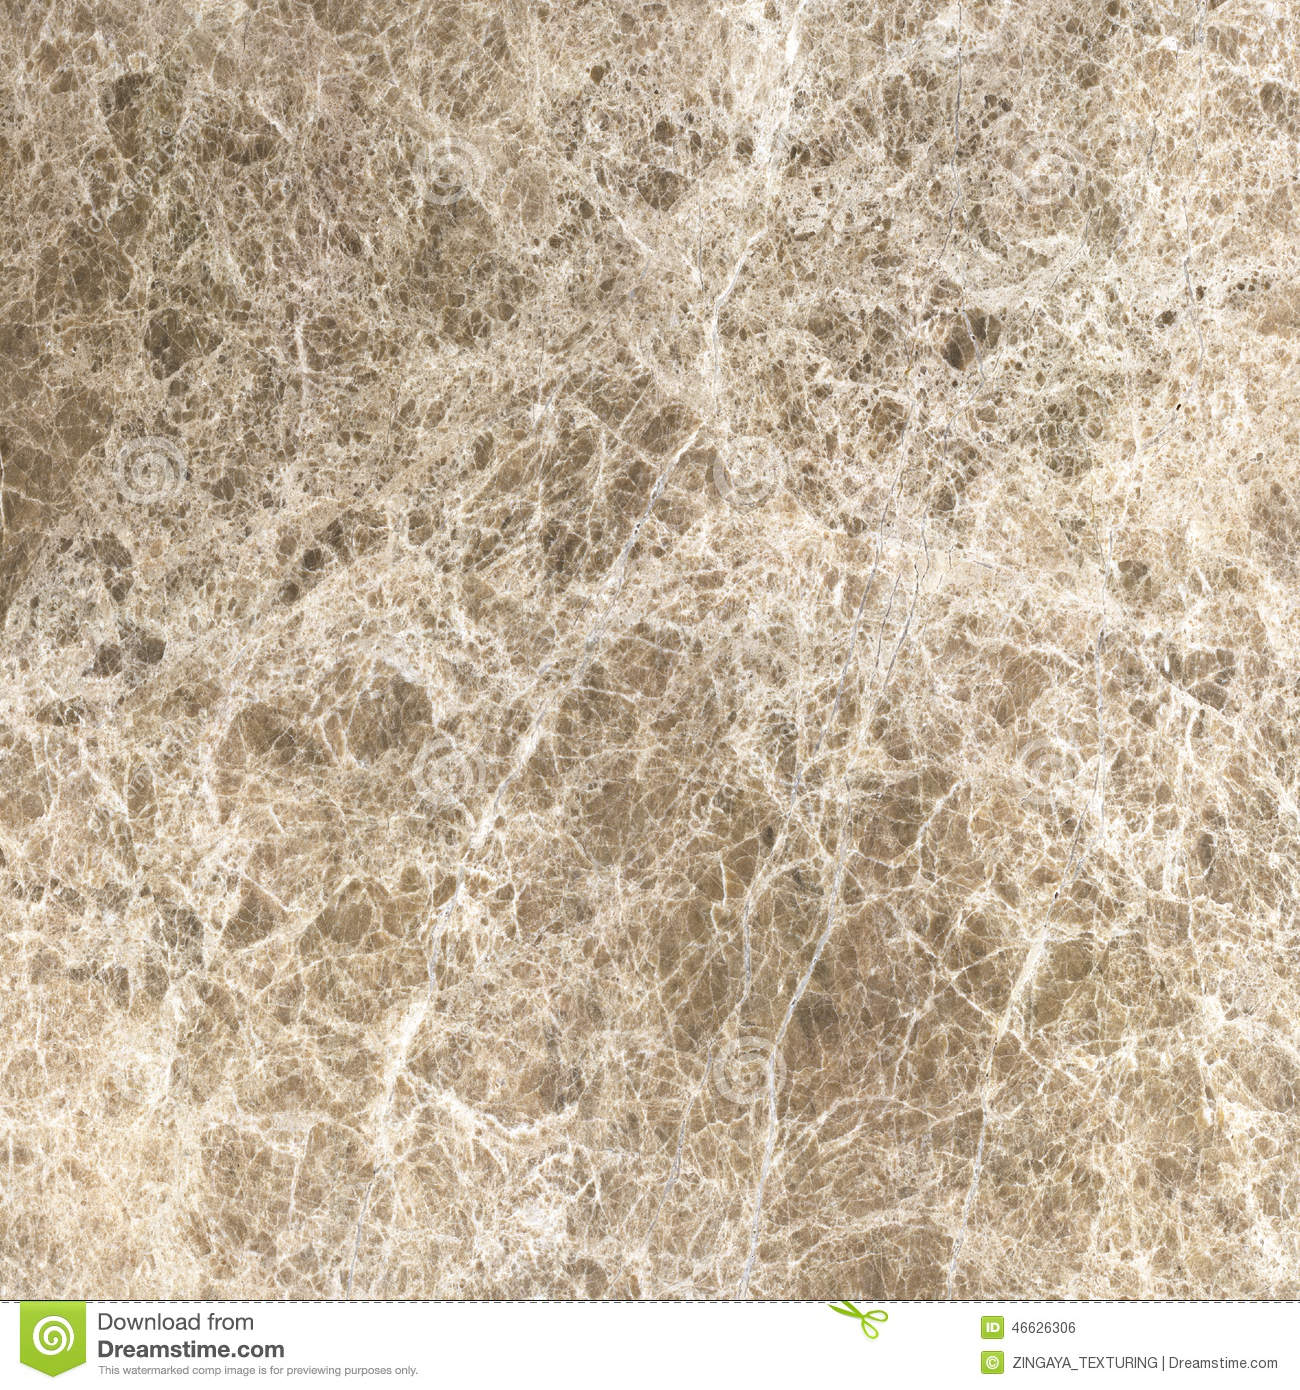 Marble Texture Brown Background Stock Photo Image Of High Brown 46626306